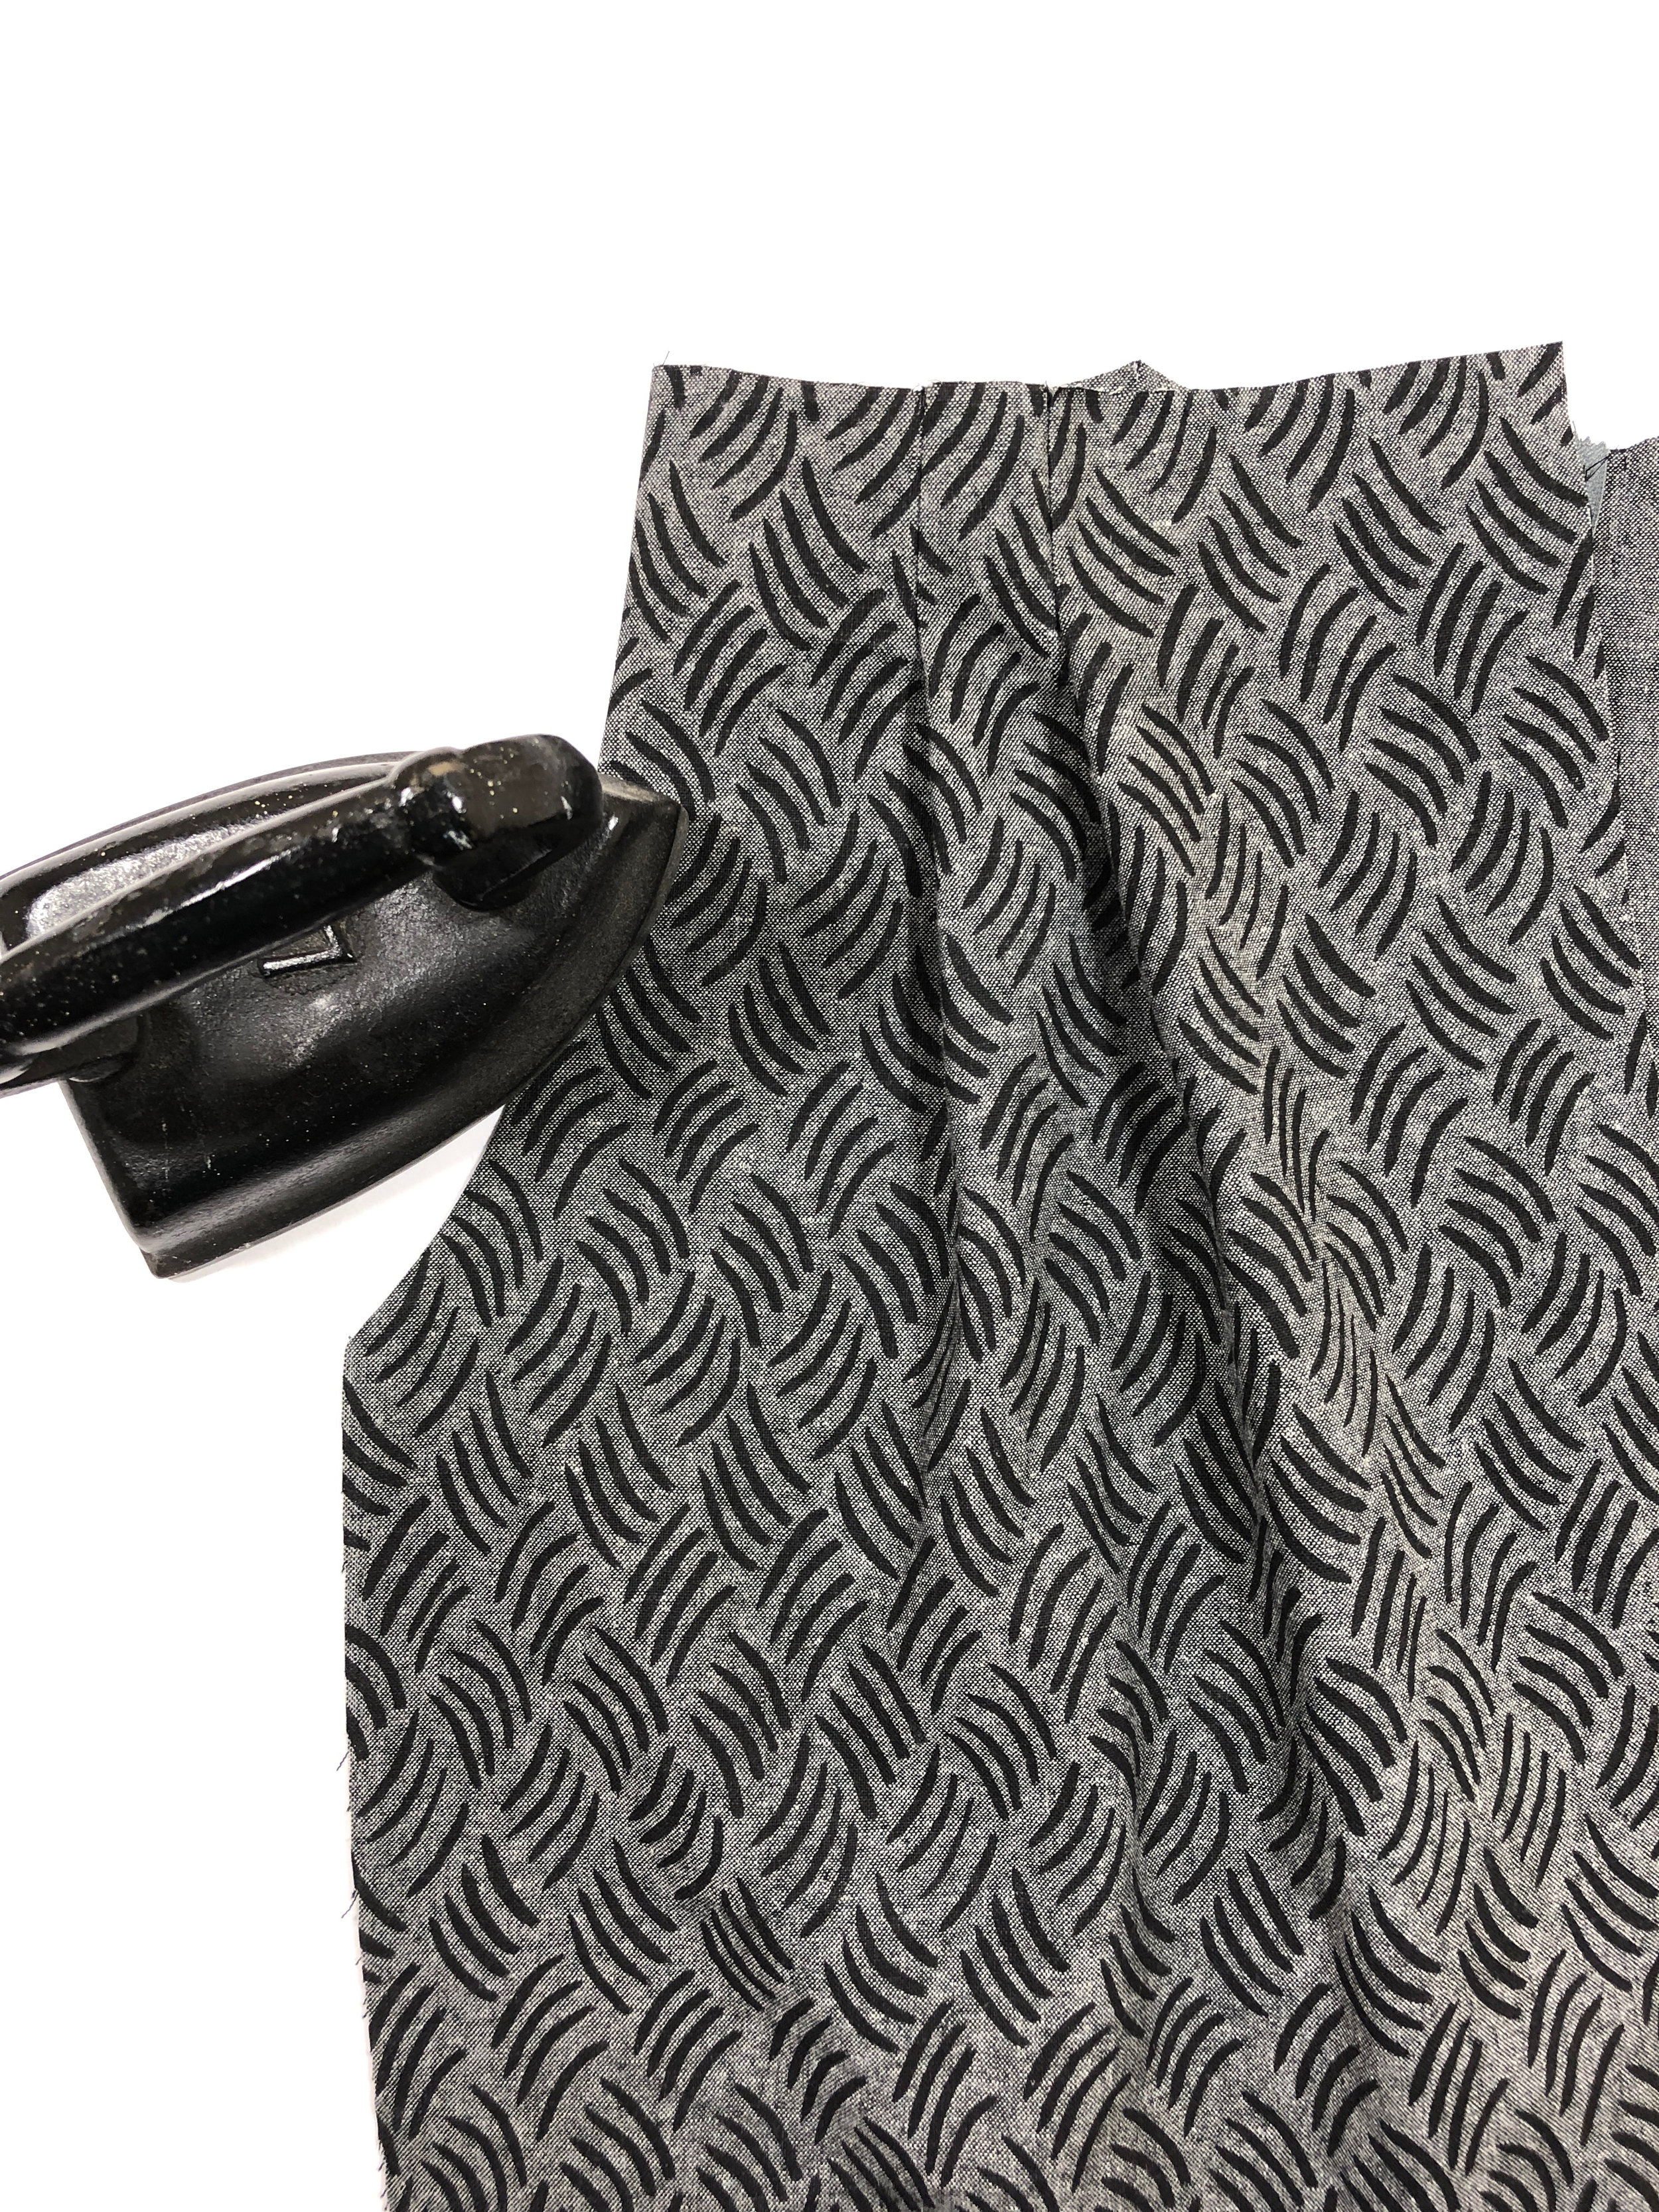 16. Flip the pocket towards the inside of the pant front, and press well.